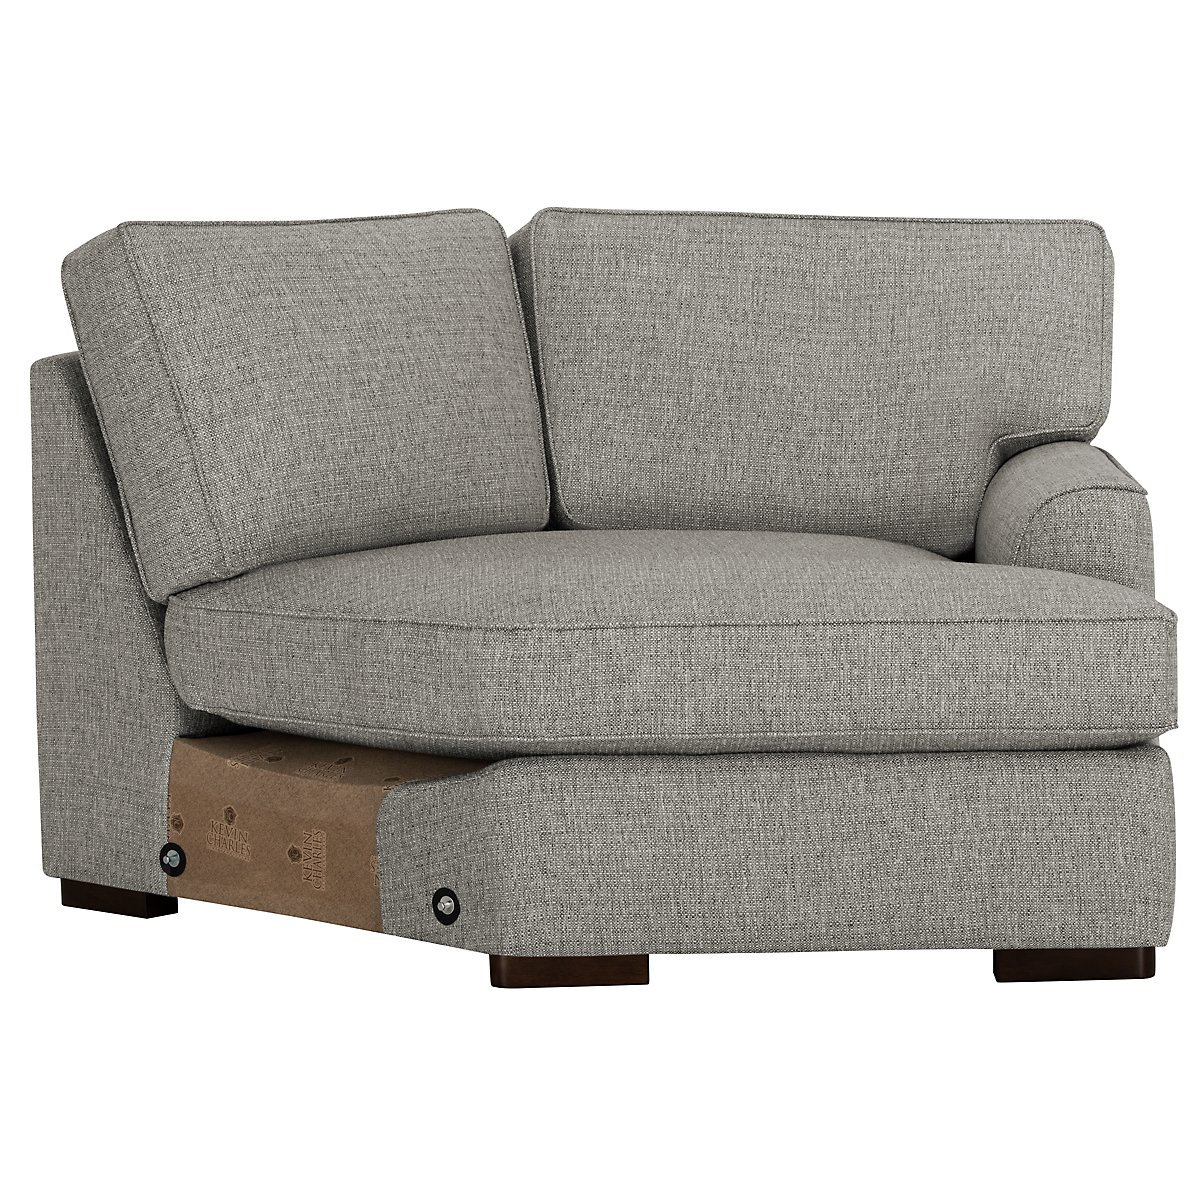 Free Furniture Austin: City Furniture: Austin Gray Fabric Small Right Cuddler